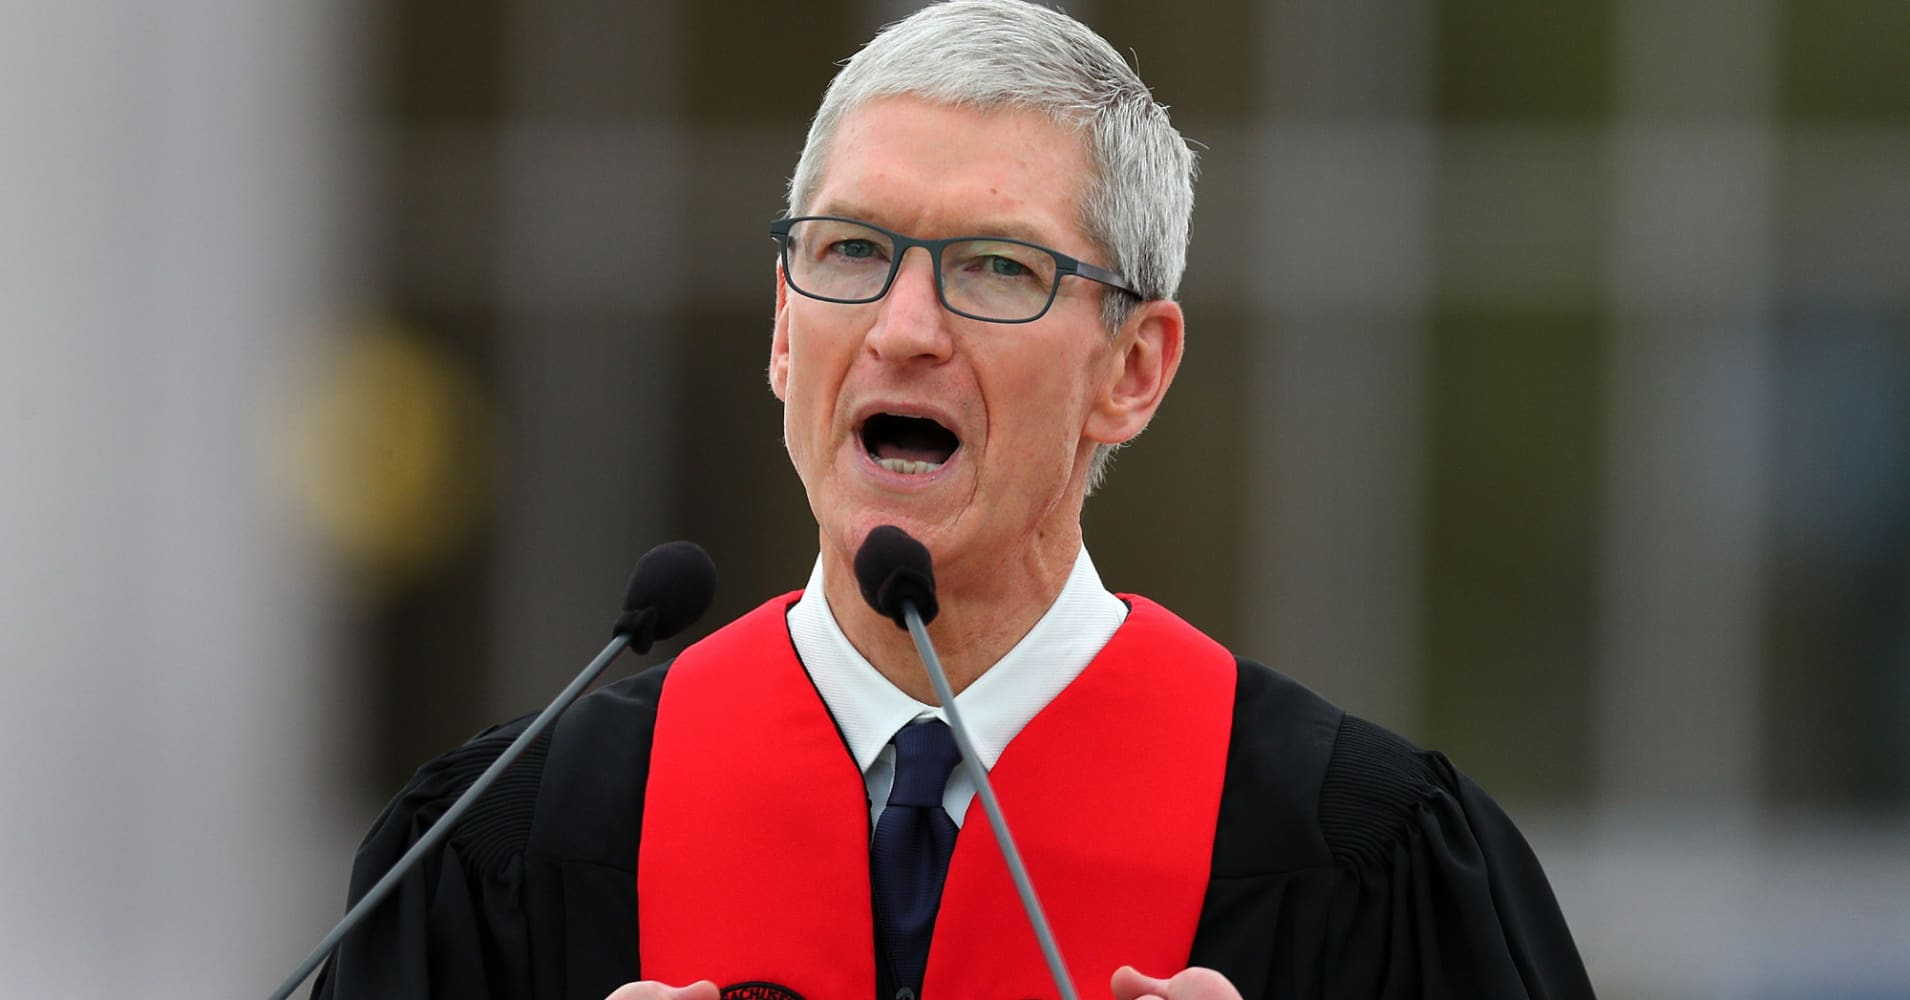 Apple CEO Tim Cook gives the commencement address at the Massachusetts Institute of Technology on Jun. 9, 2017.